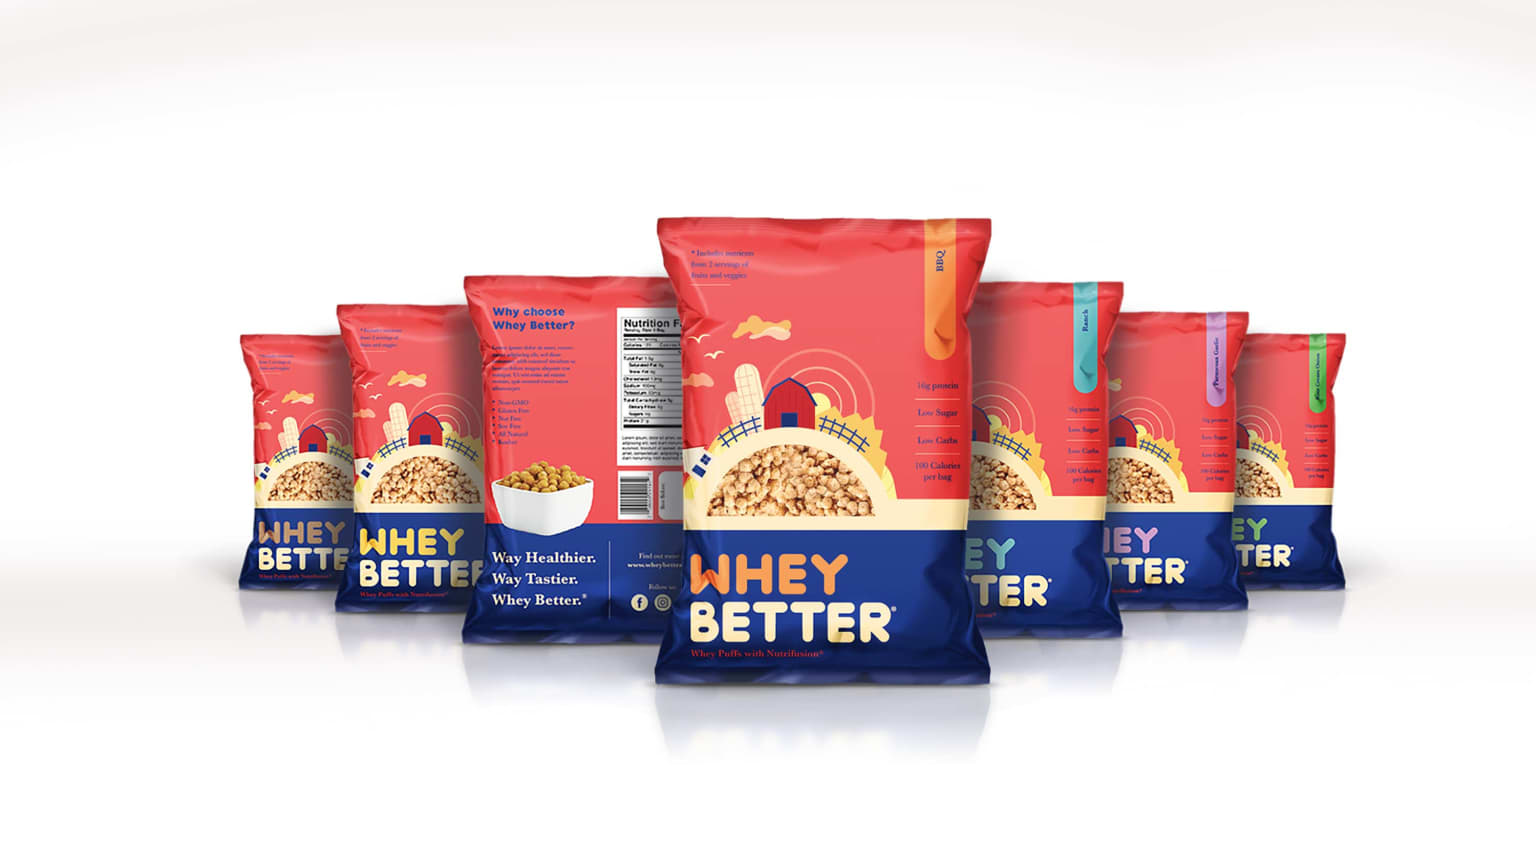 Whey Better Concept Designs